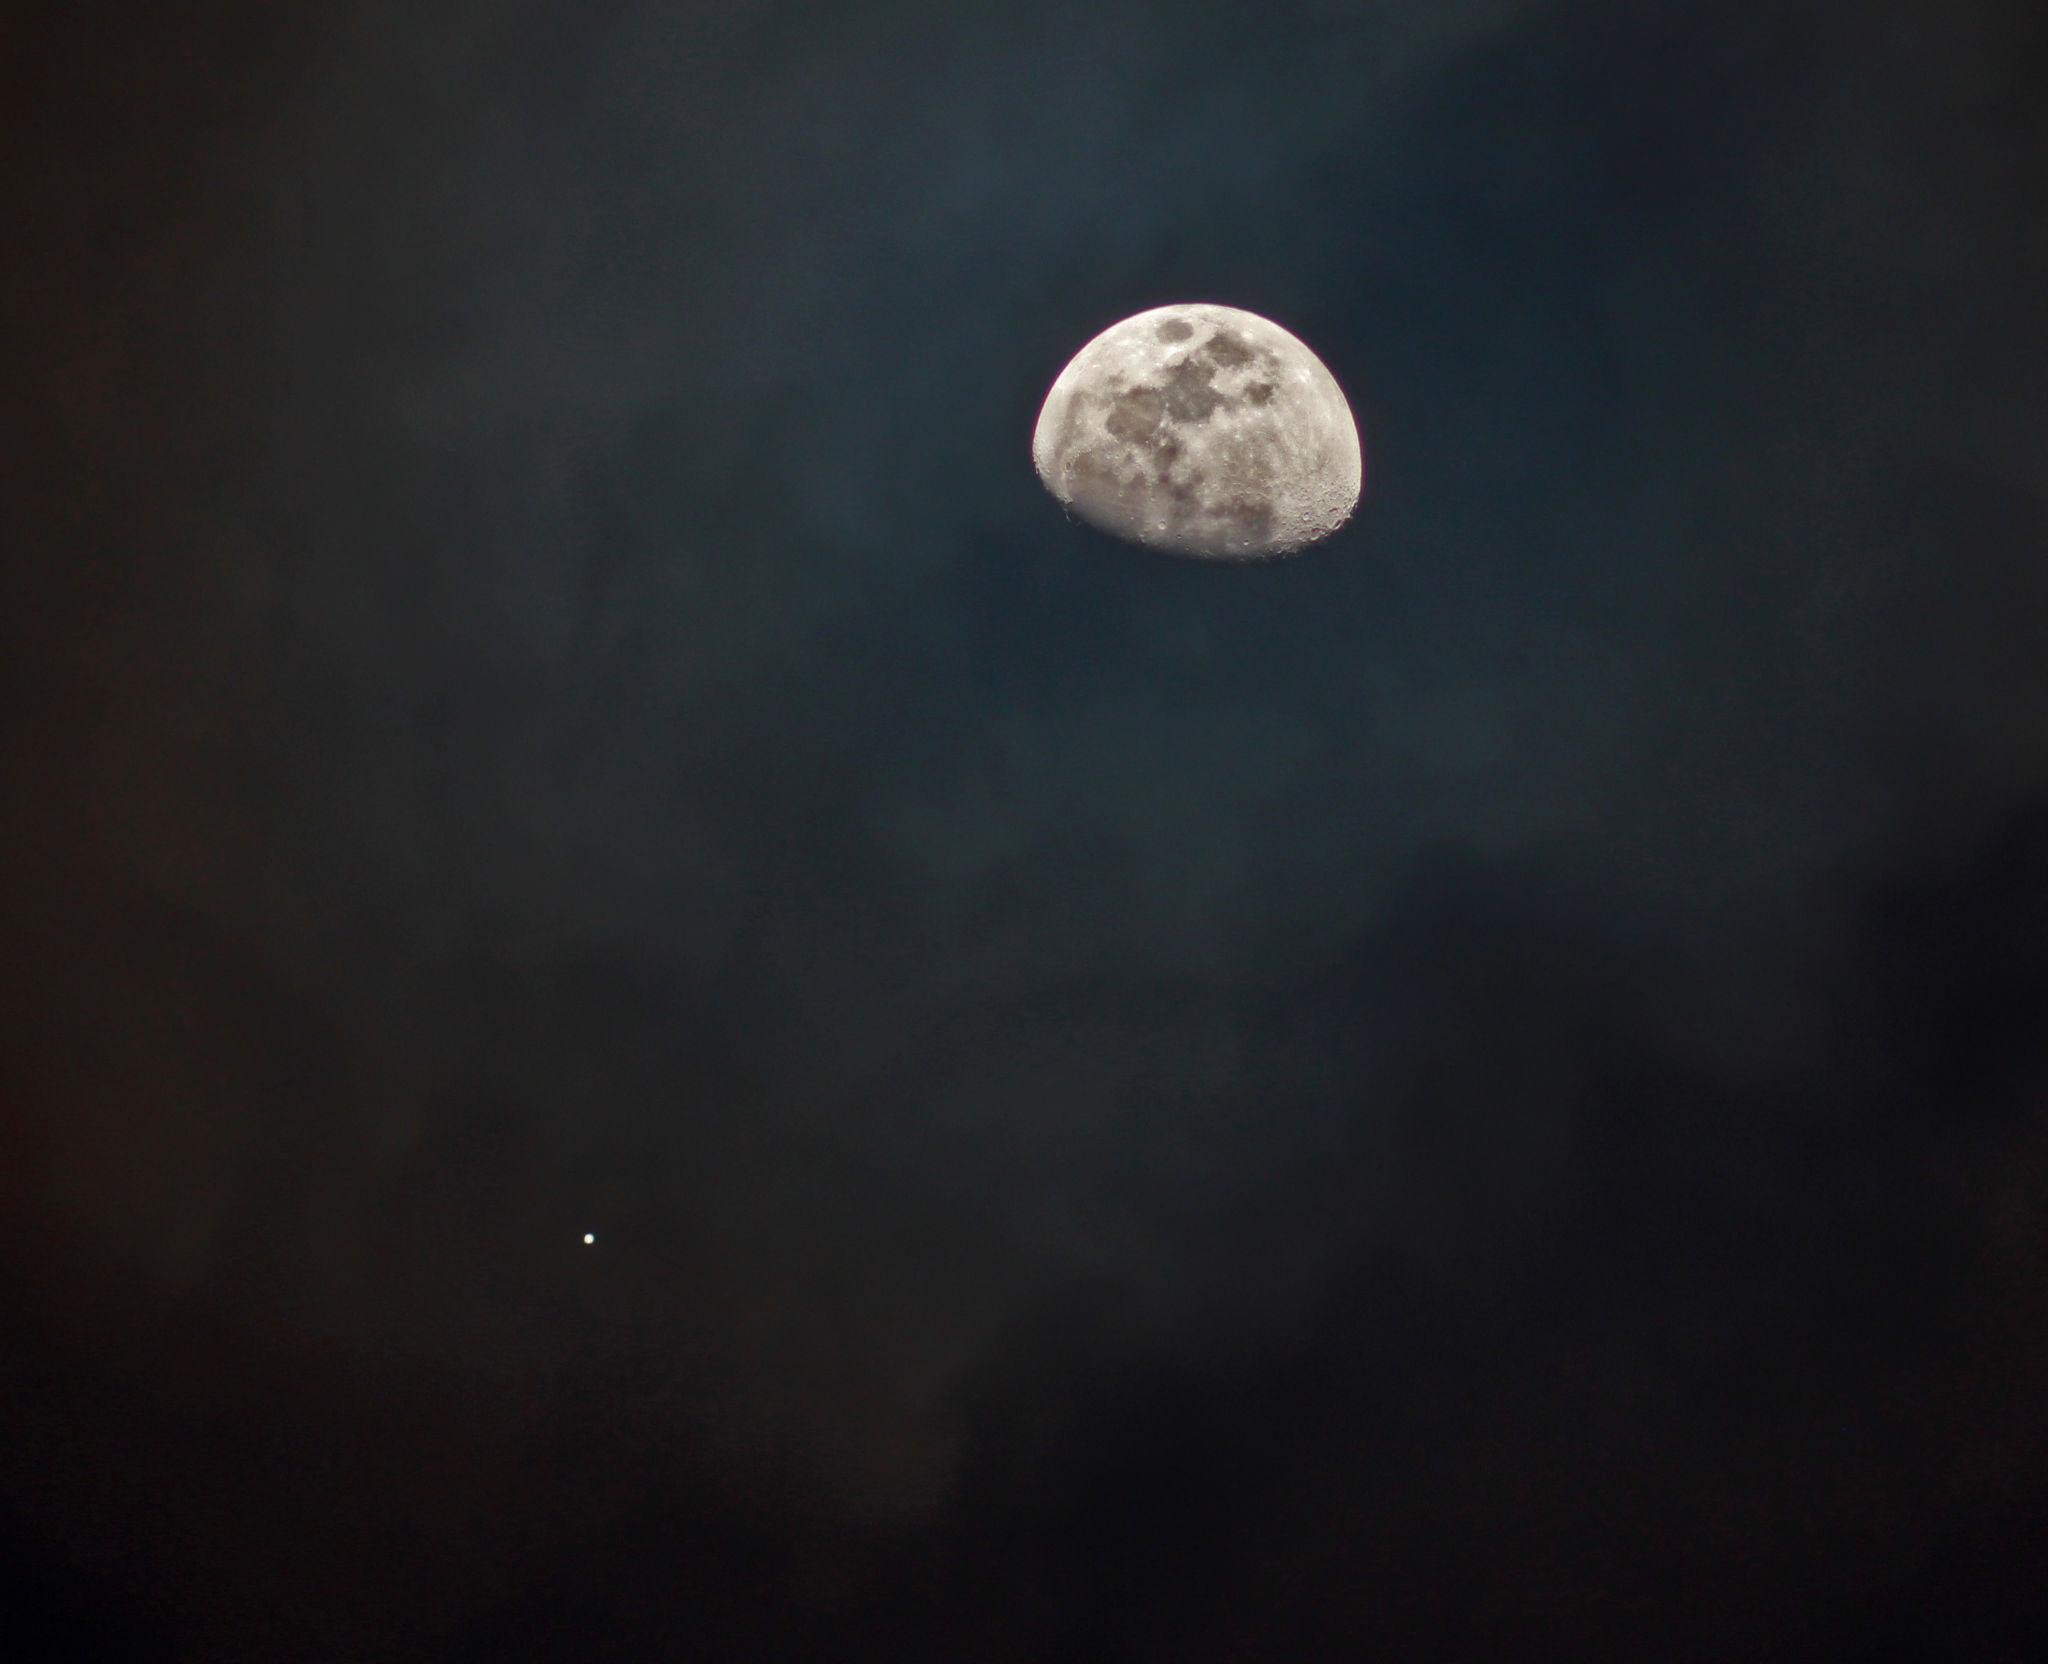 Jupiter and Moon in Conjunction